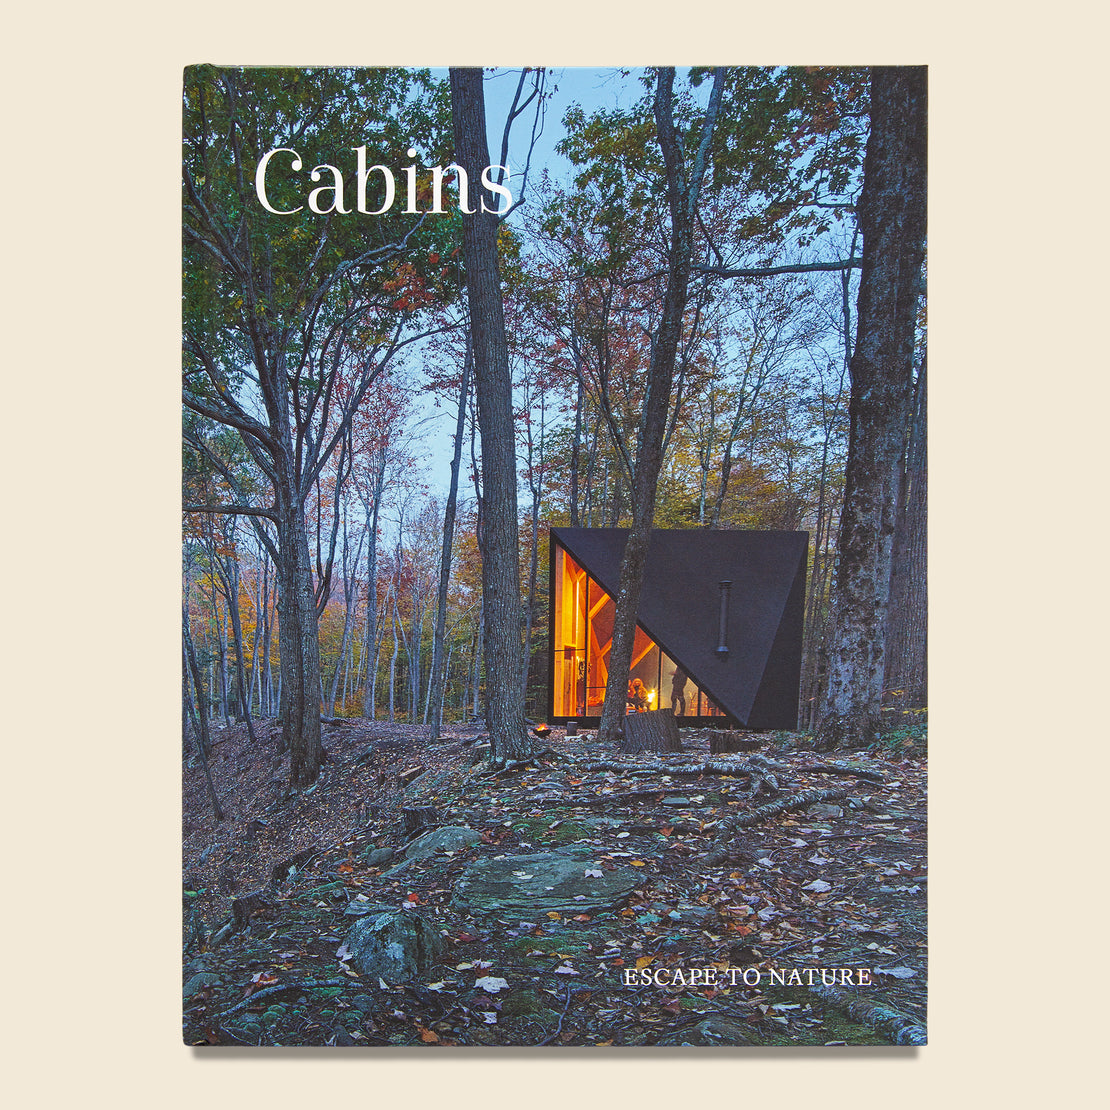 Bookstore Cabins: Escape to Nature